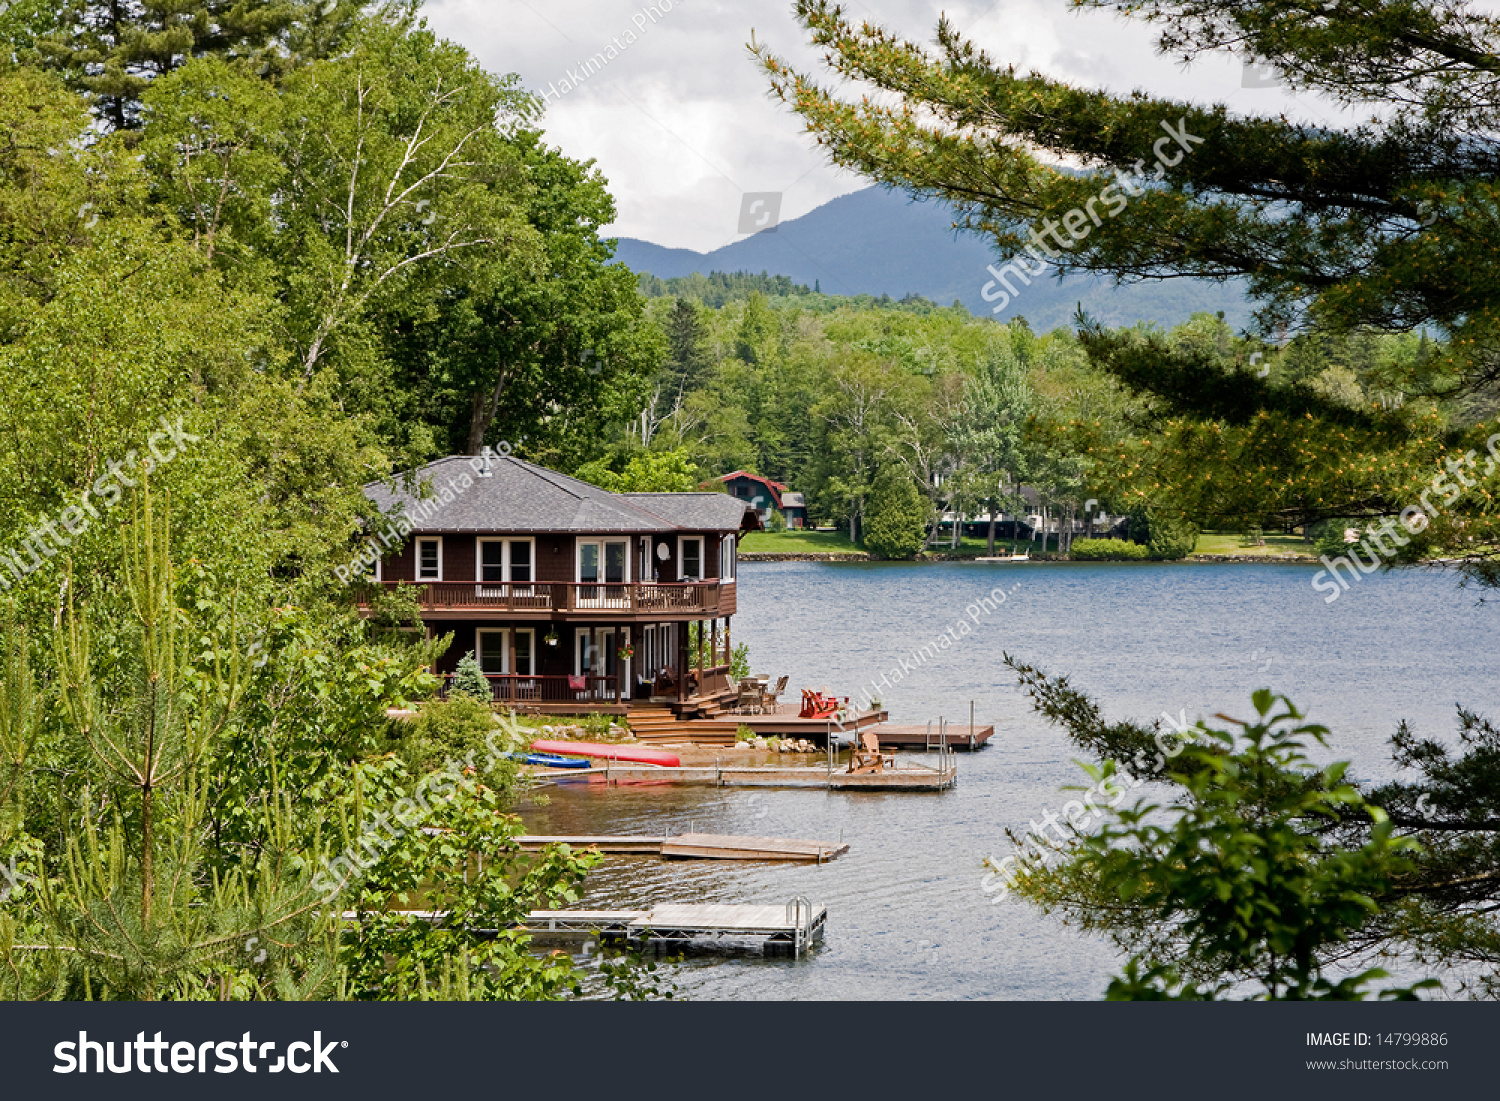 Beautiful House On The Water Side Surrounded By Trees